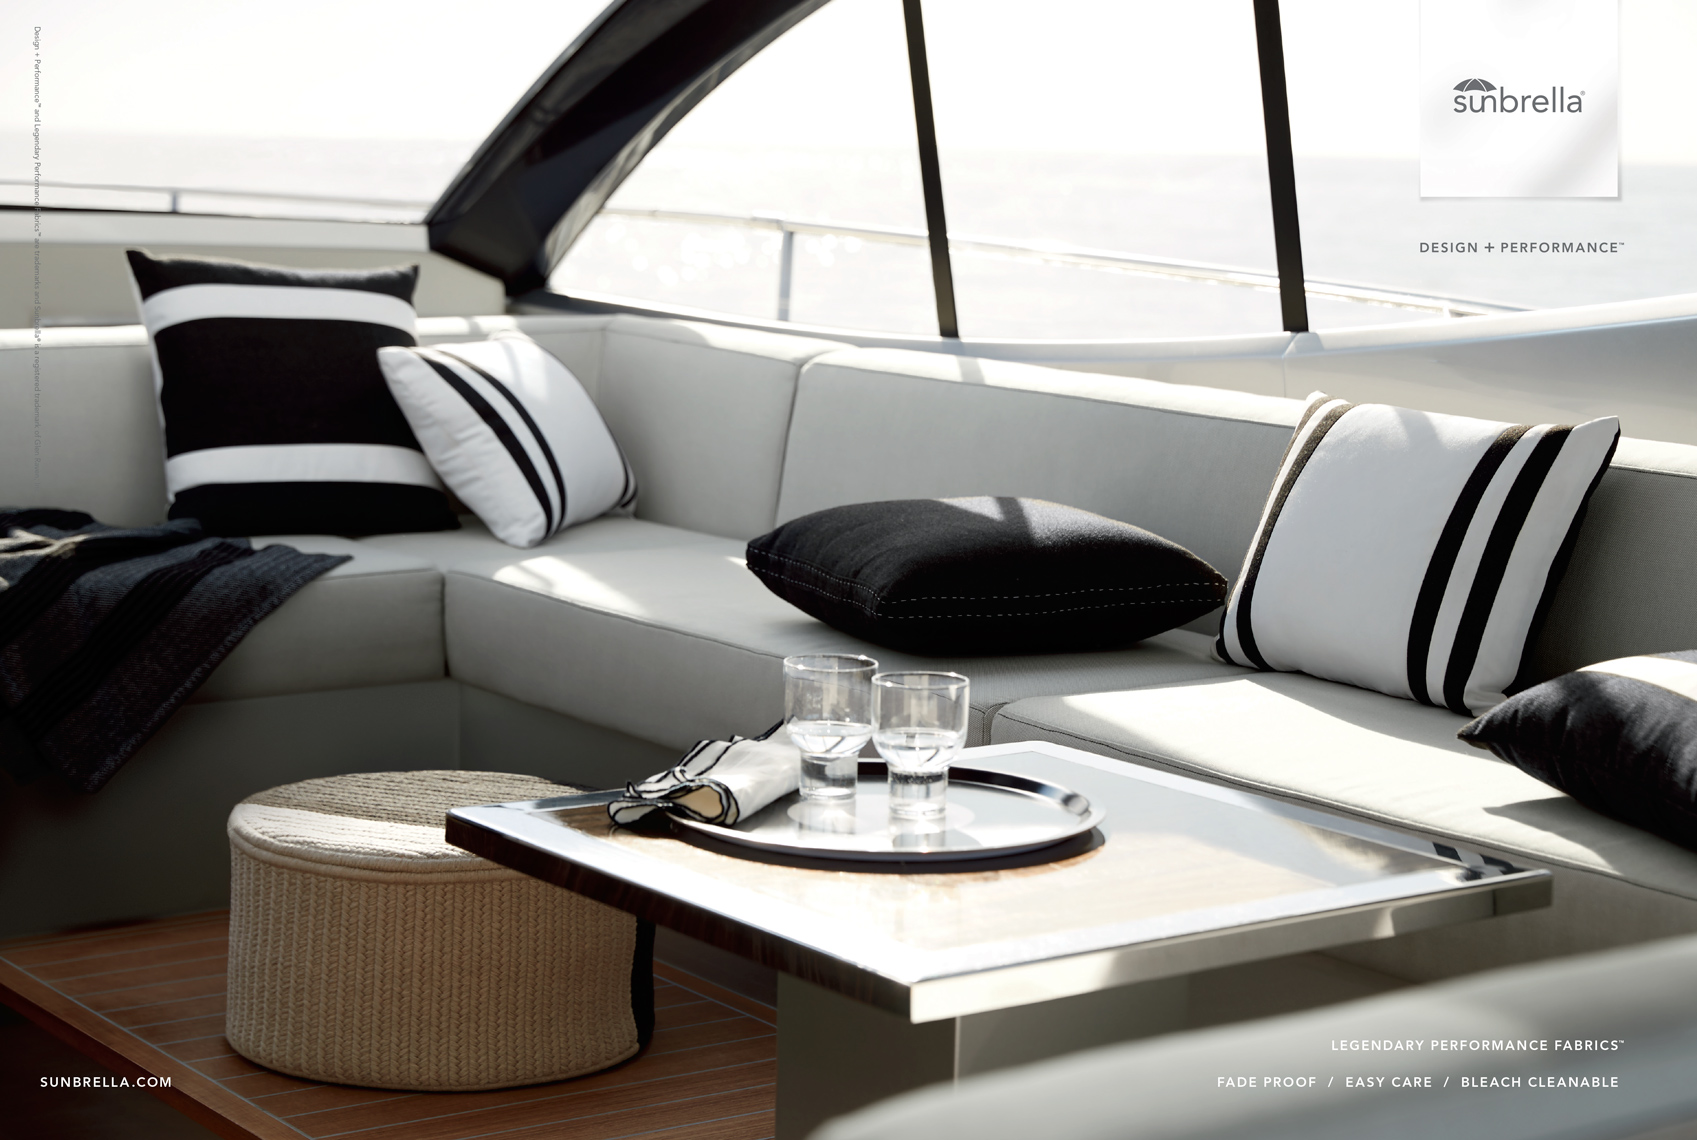 Advertising: Sunbrella Ship Interior